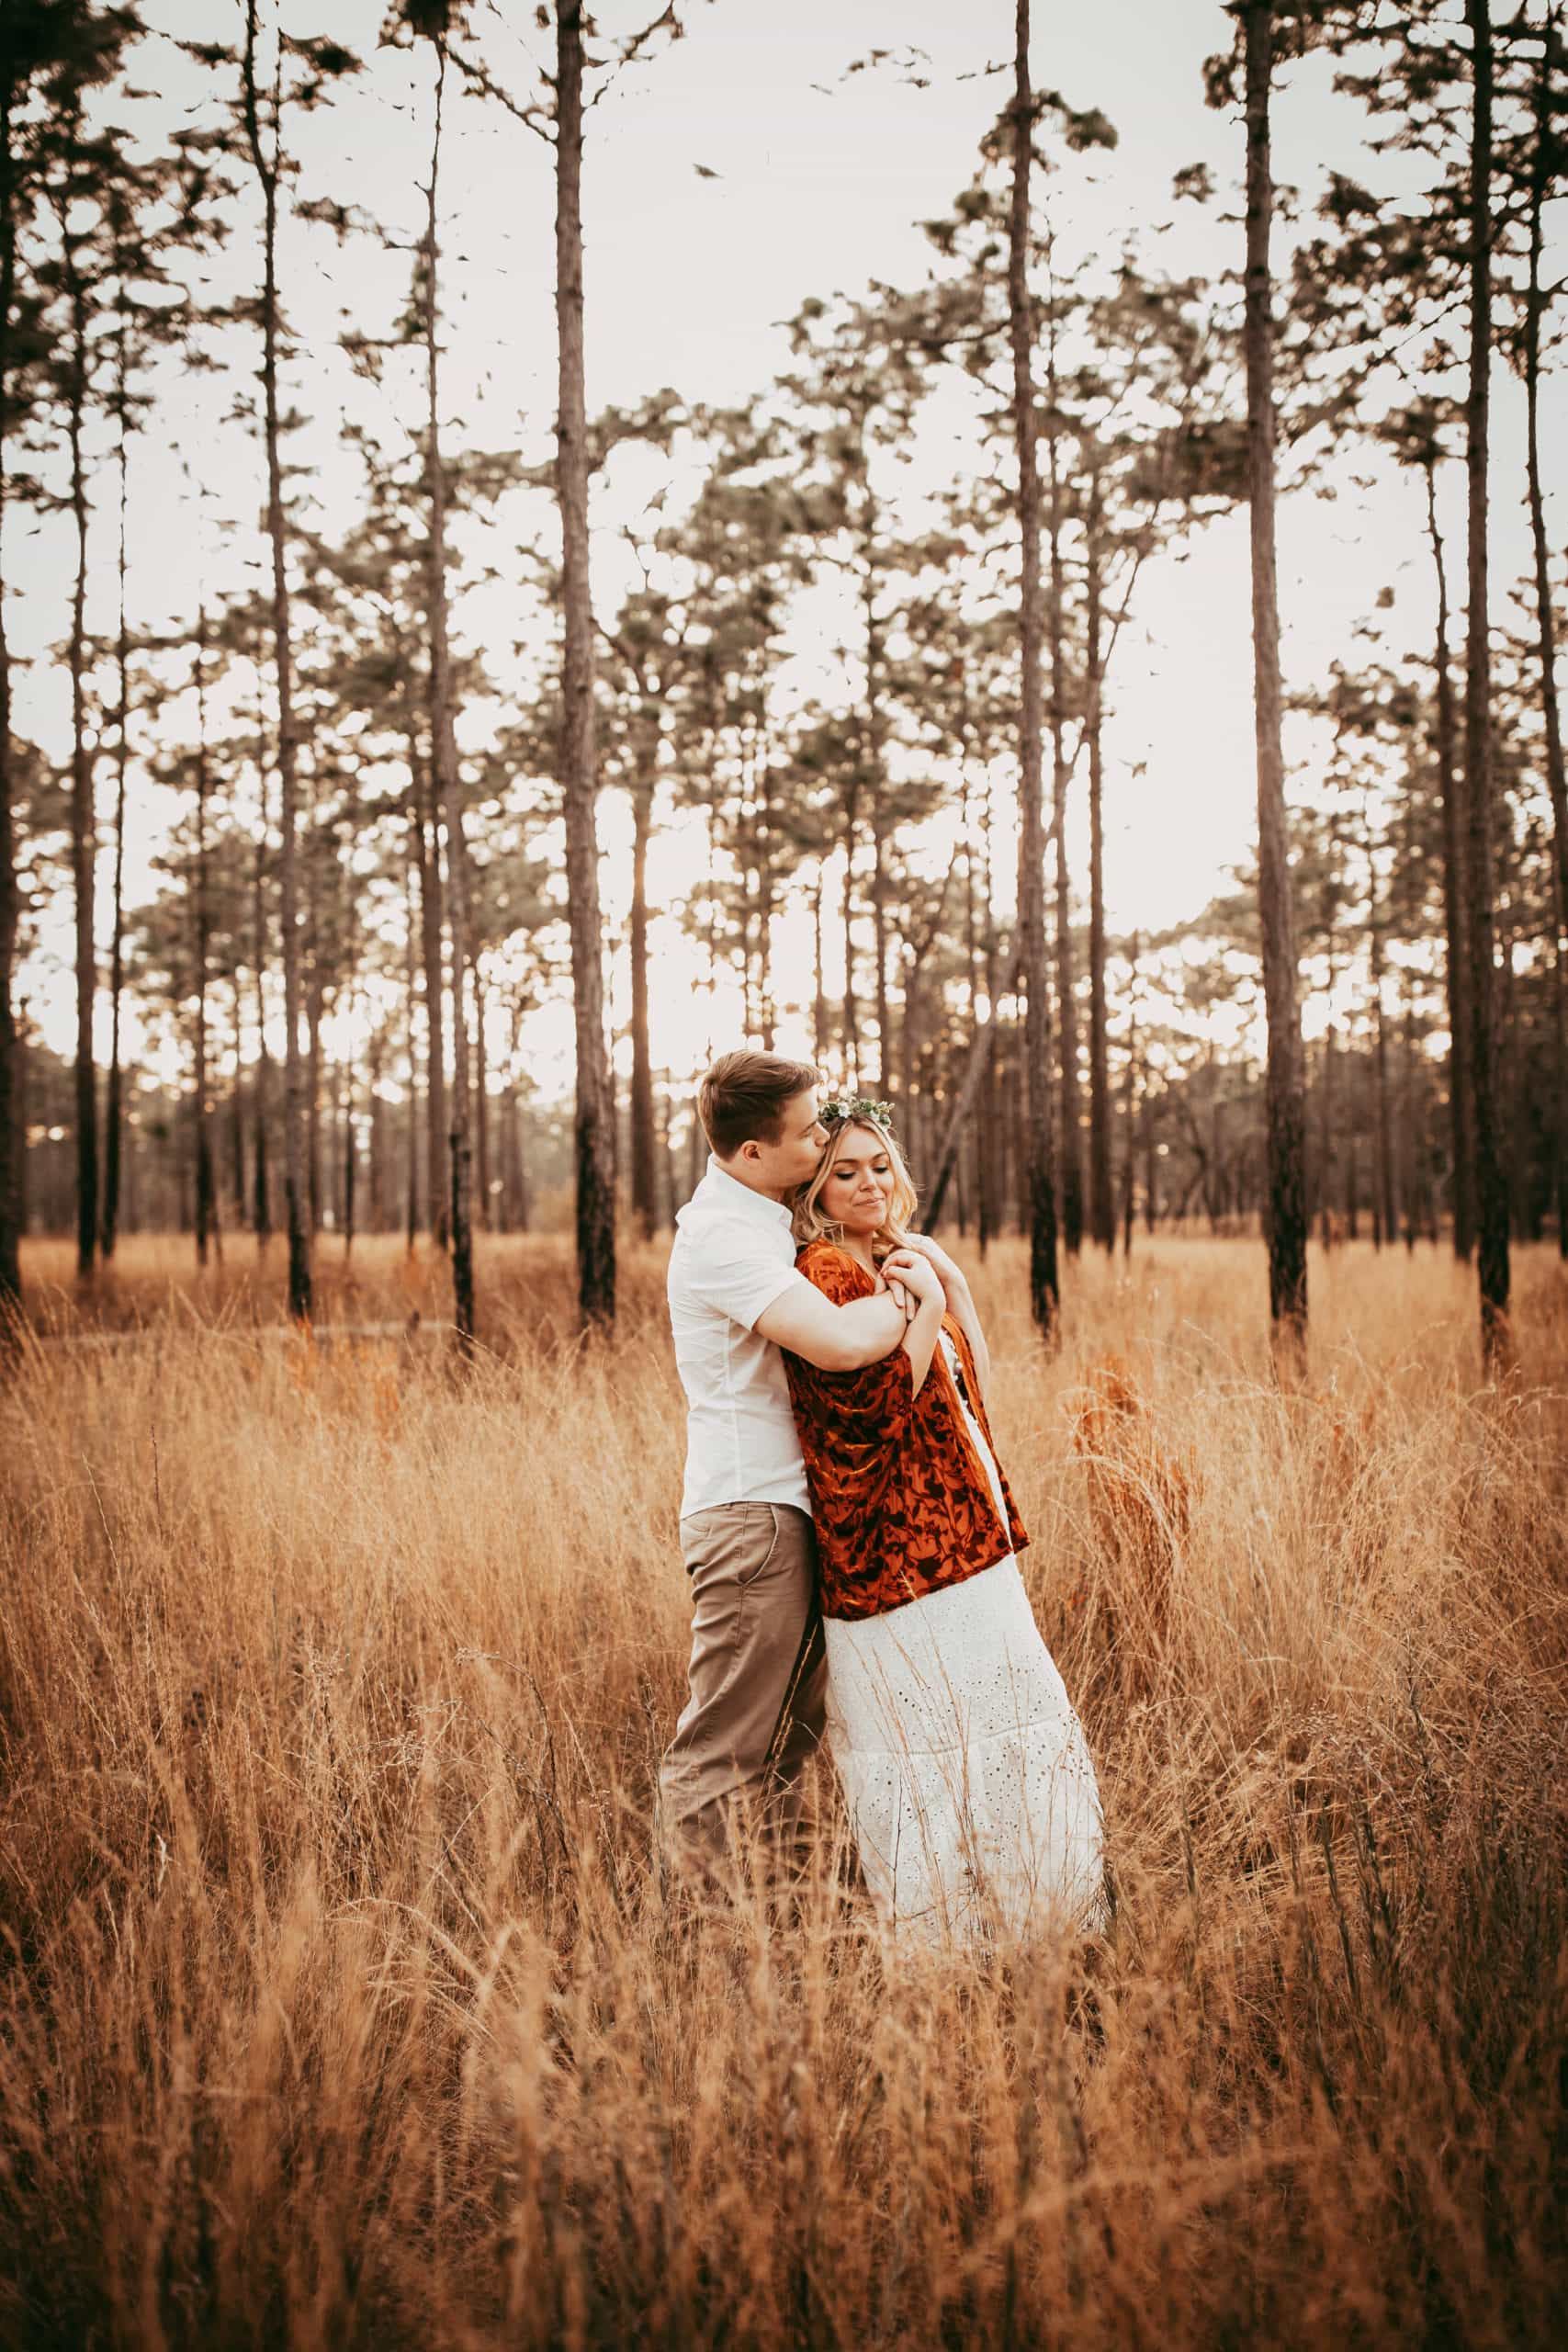 Orlando Couples Photography, couple cuddled up together in a field